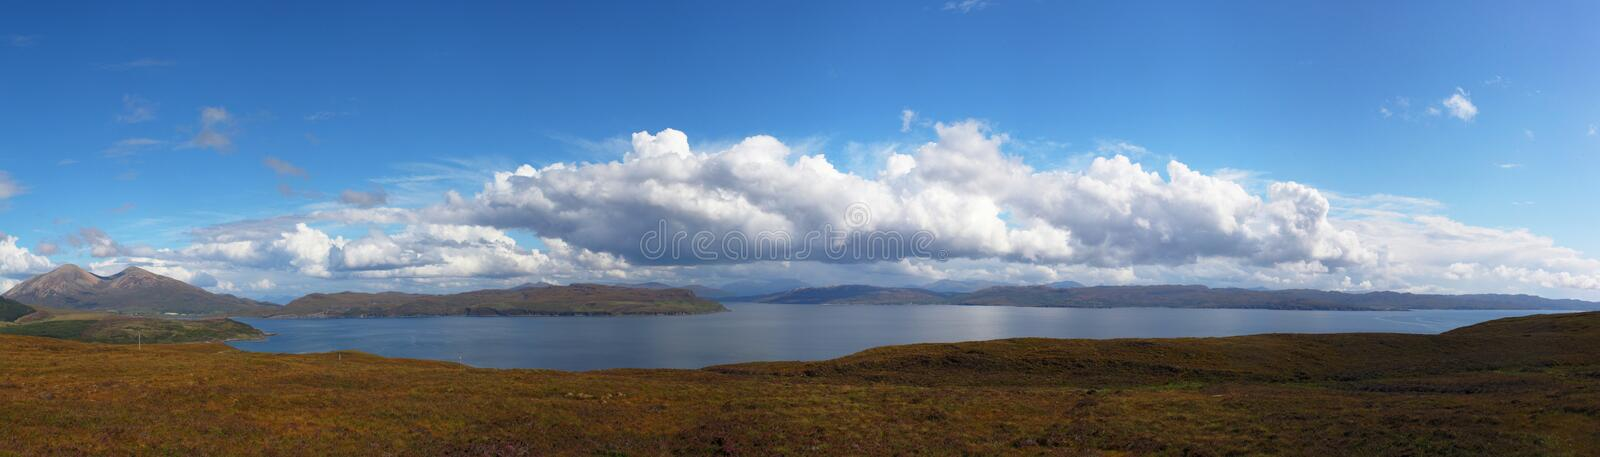 Scottish landscape royalty free stock images